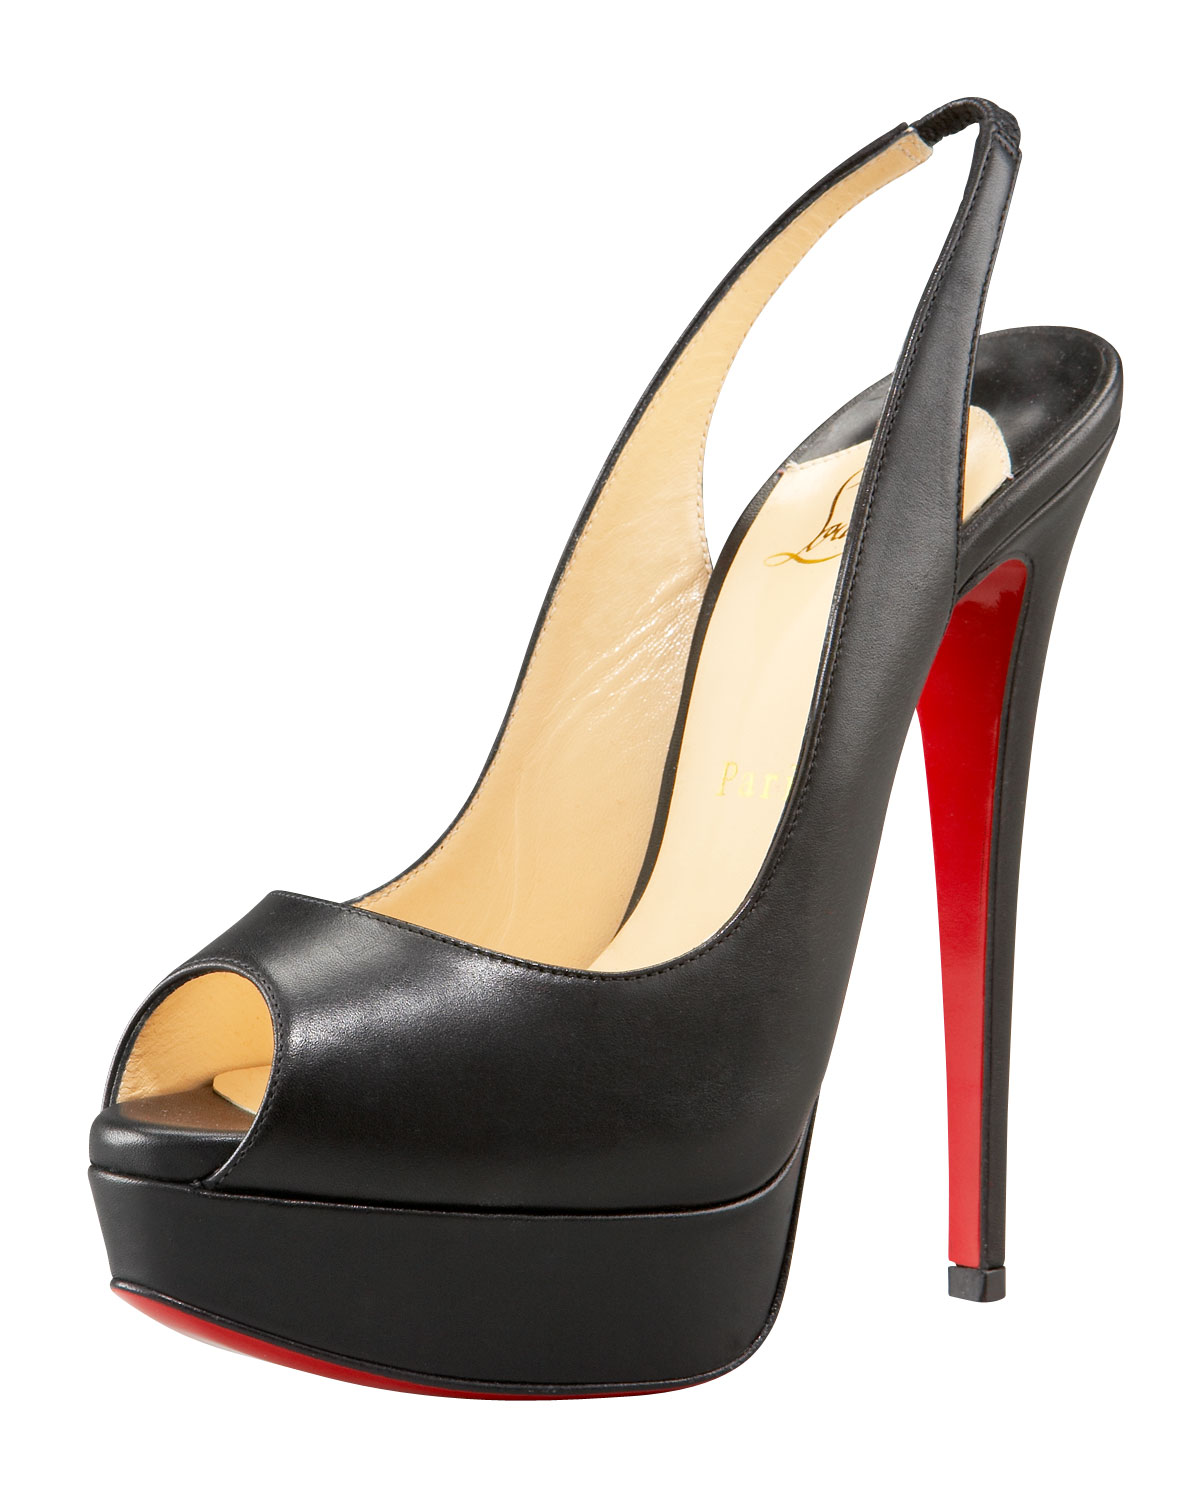 knock off red bottom shoes for women - christian louboutin peep-toe slingback pumps Black satin | The ...